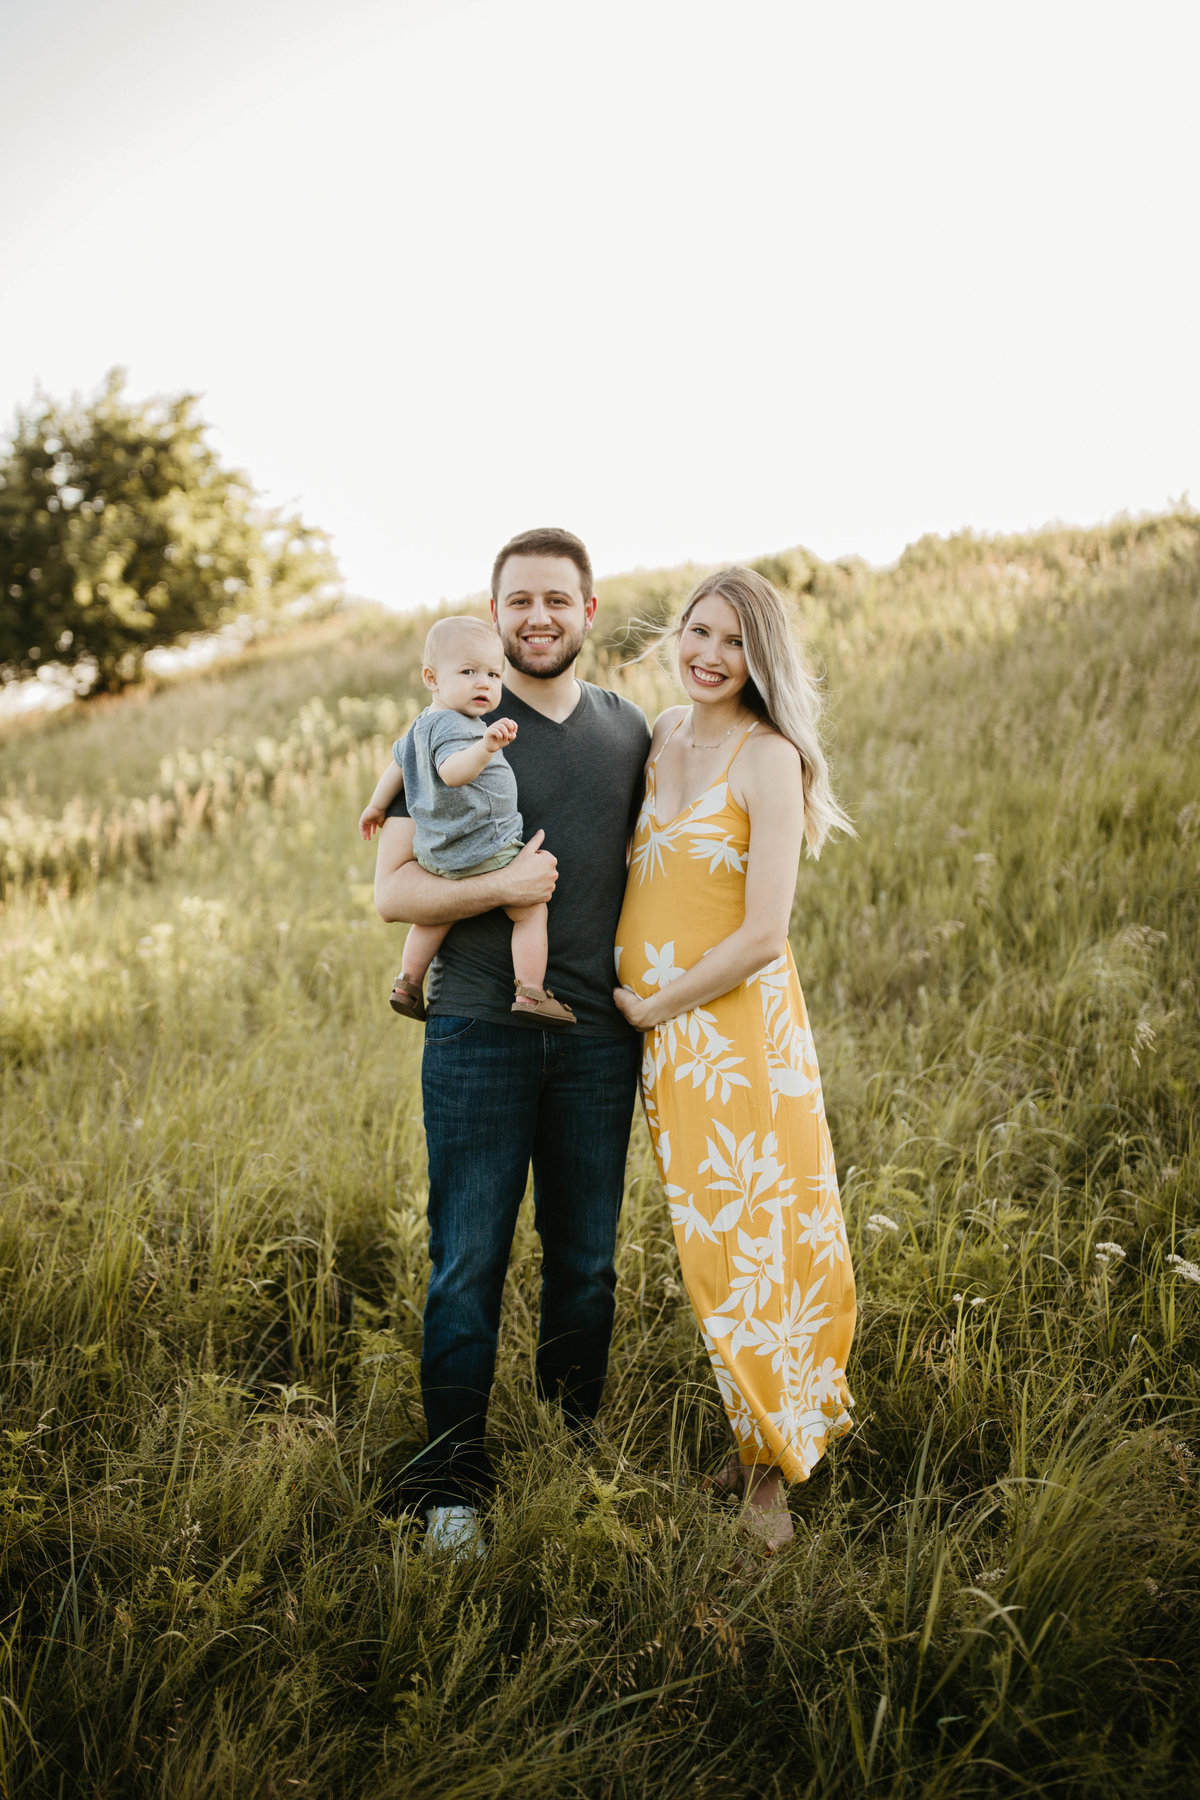 Cole Family Wichita Photographer Andrea Corwin Photography Wichita Kansas (22 of 92)